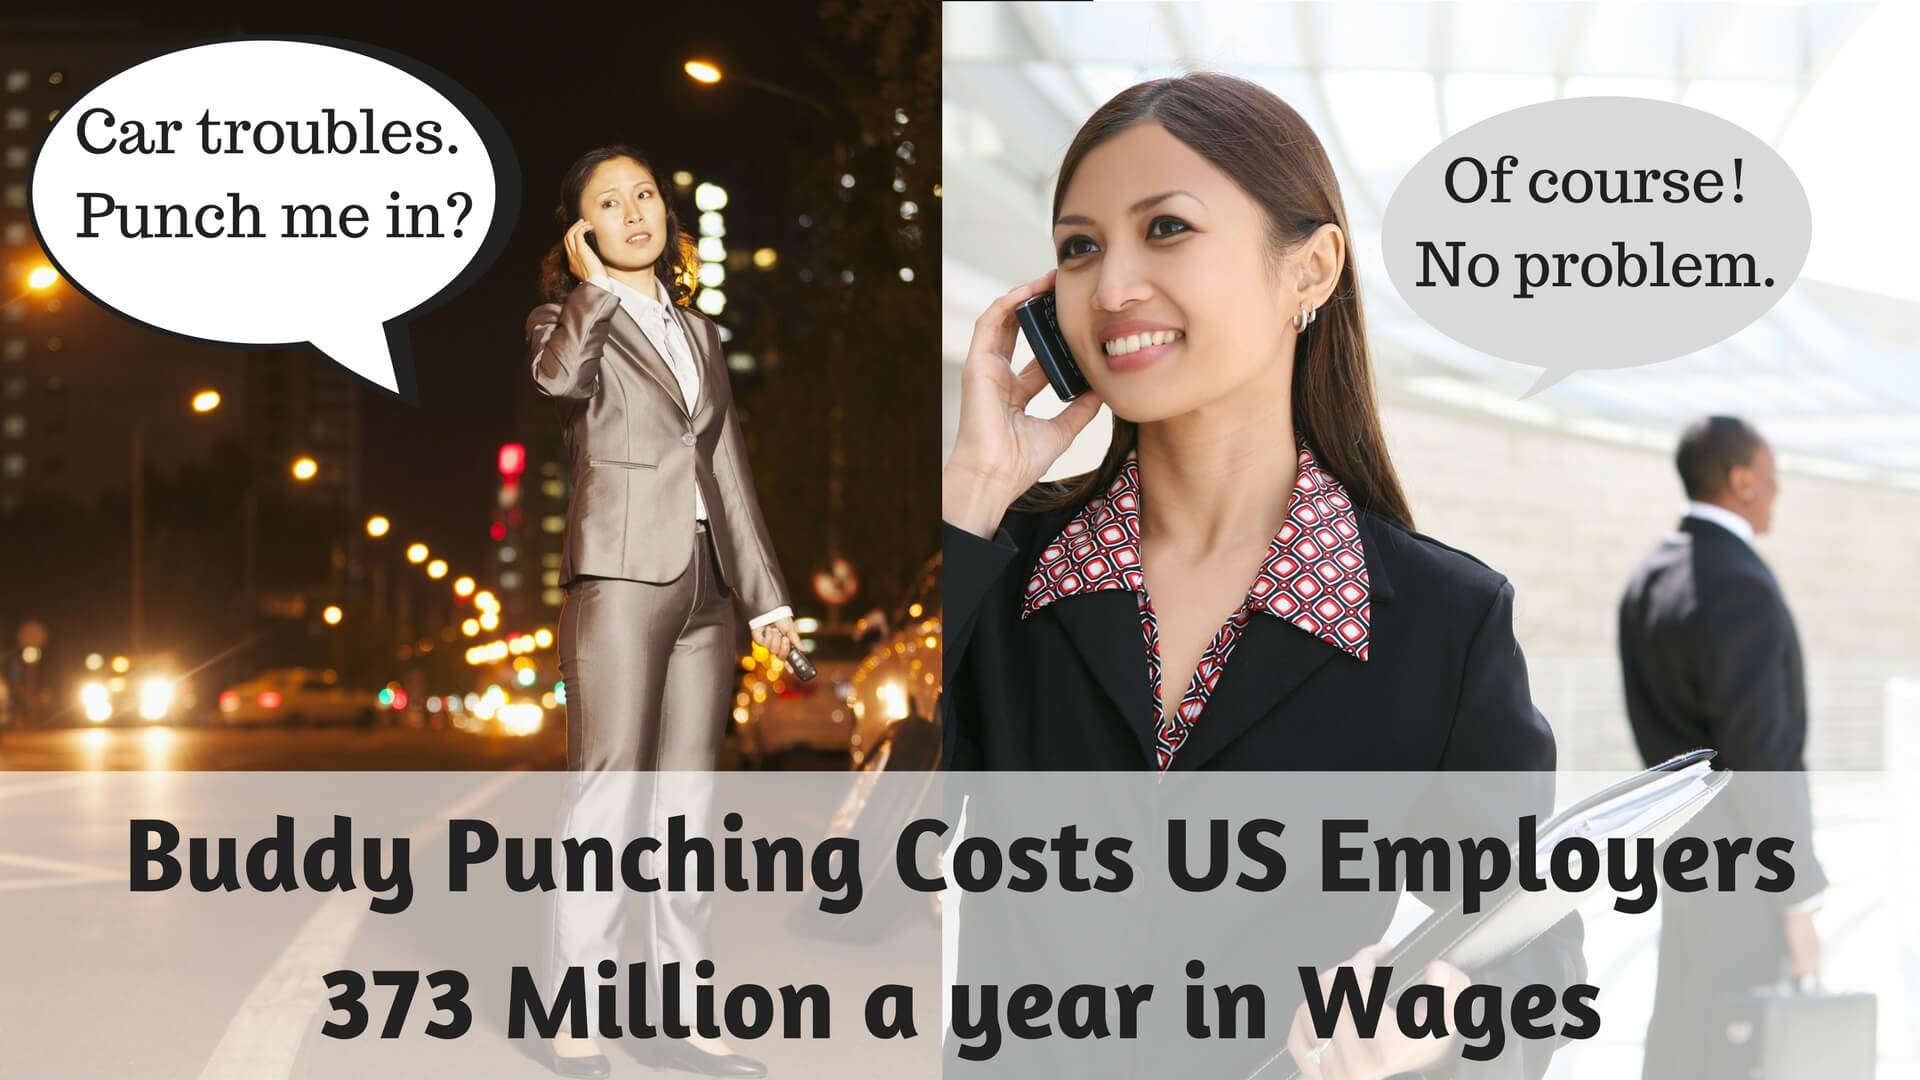 Buddy Punching Costs Employers Millions Each Year